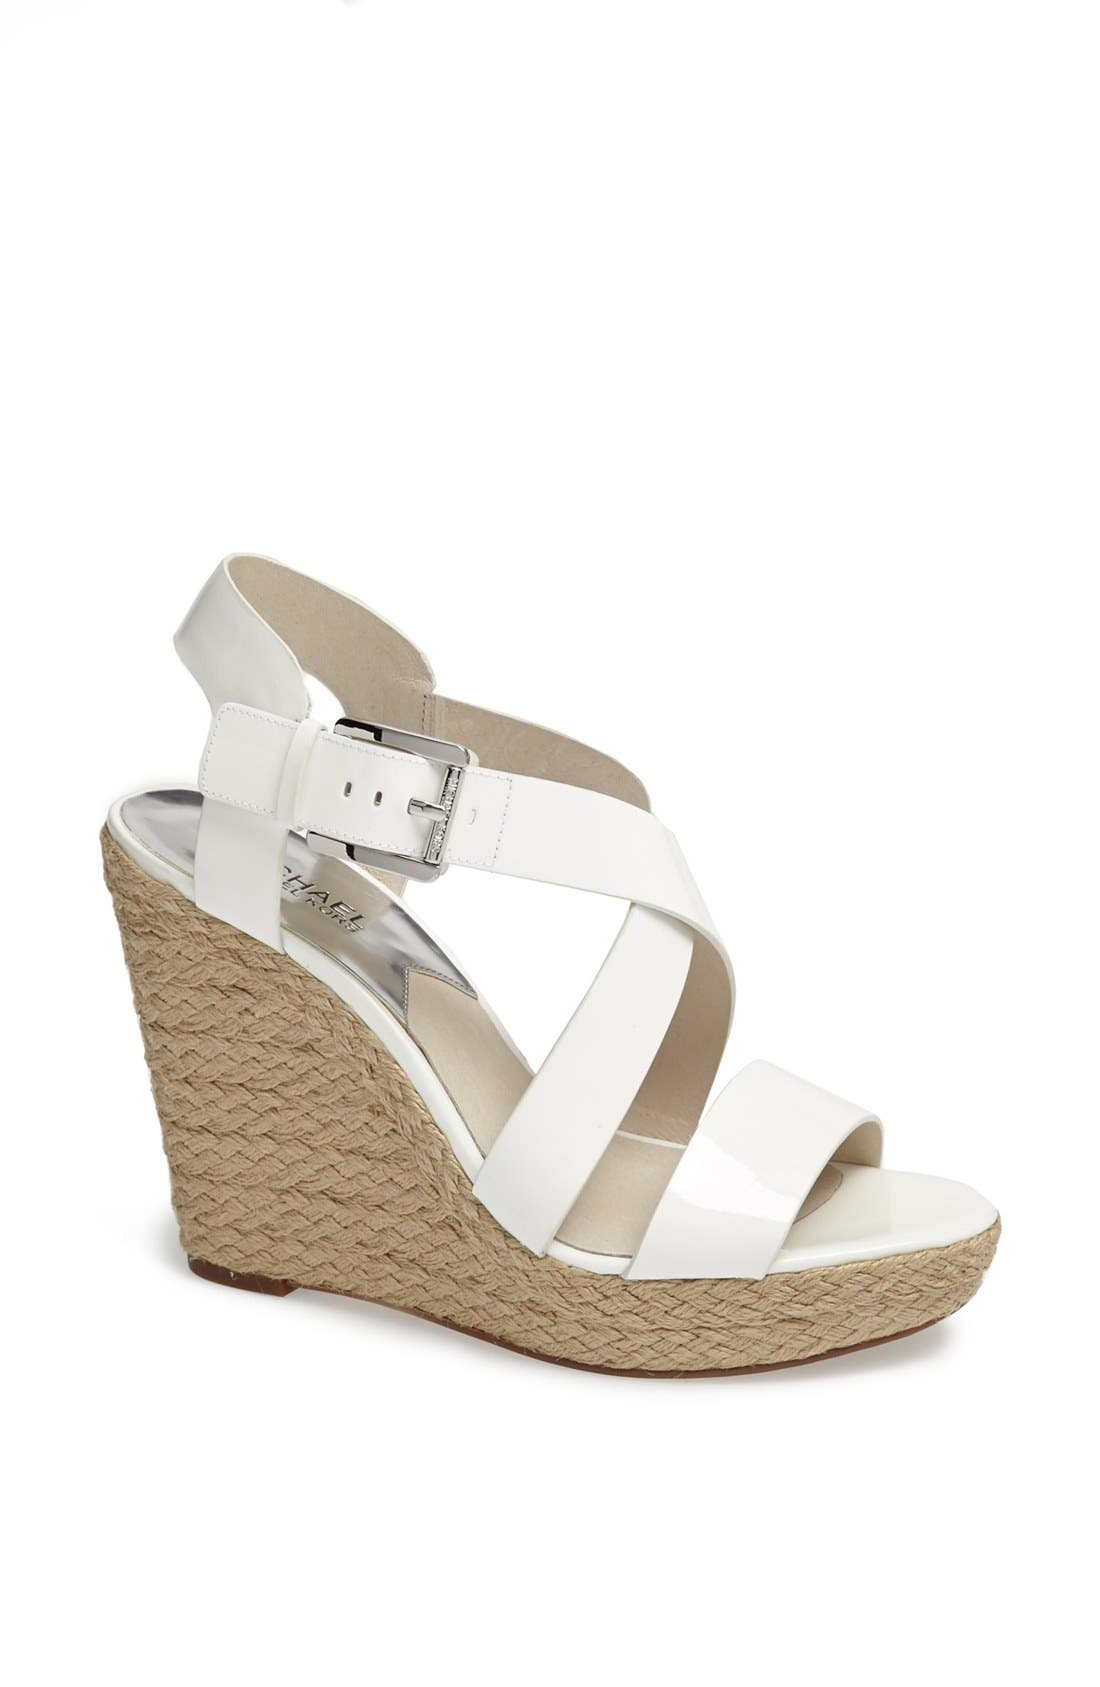 'Giovanna' Wedge Sandal,                             Main thumbnail 1, color,                             101